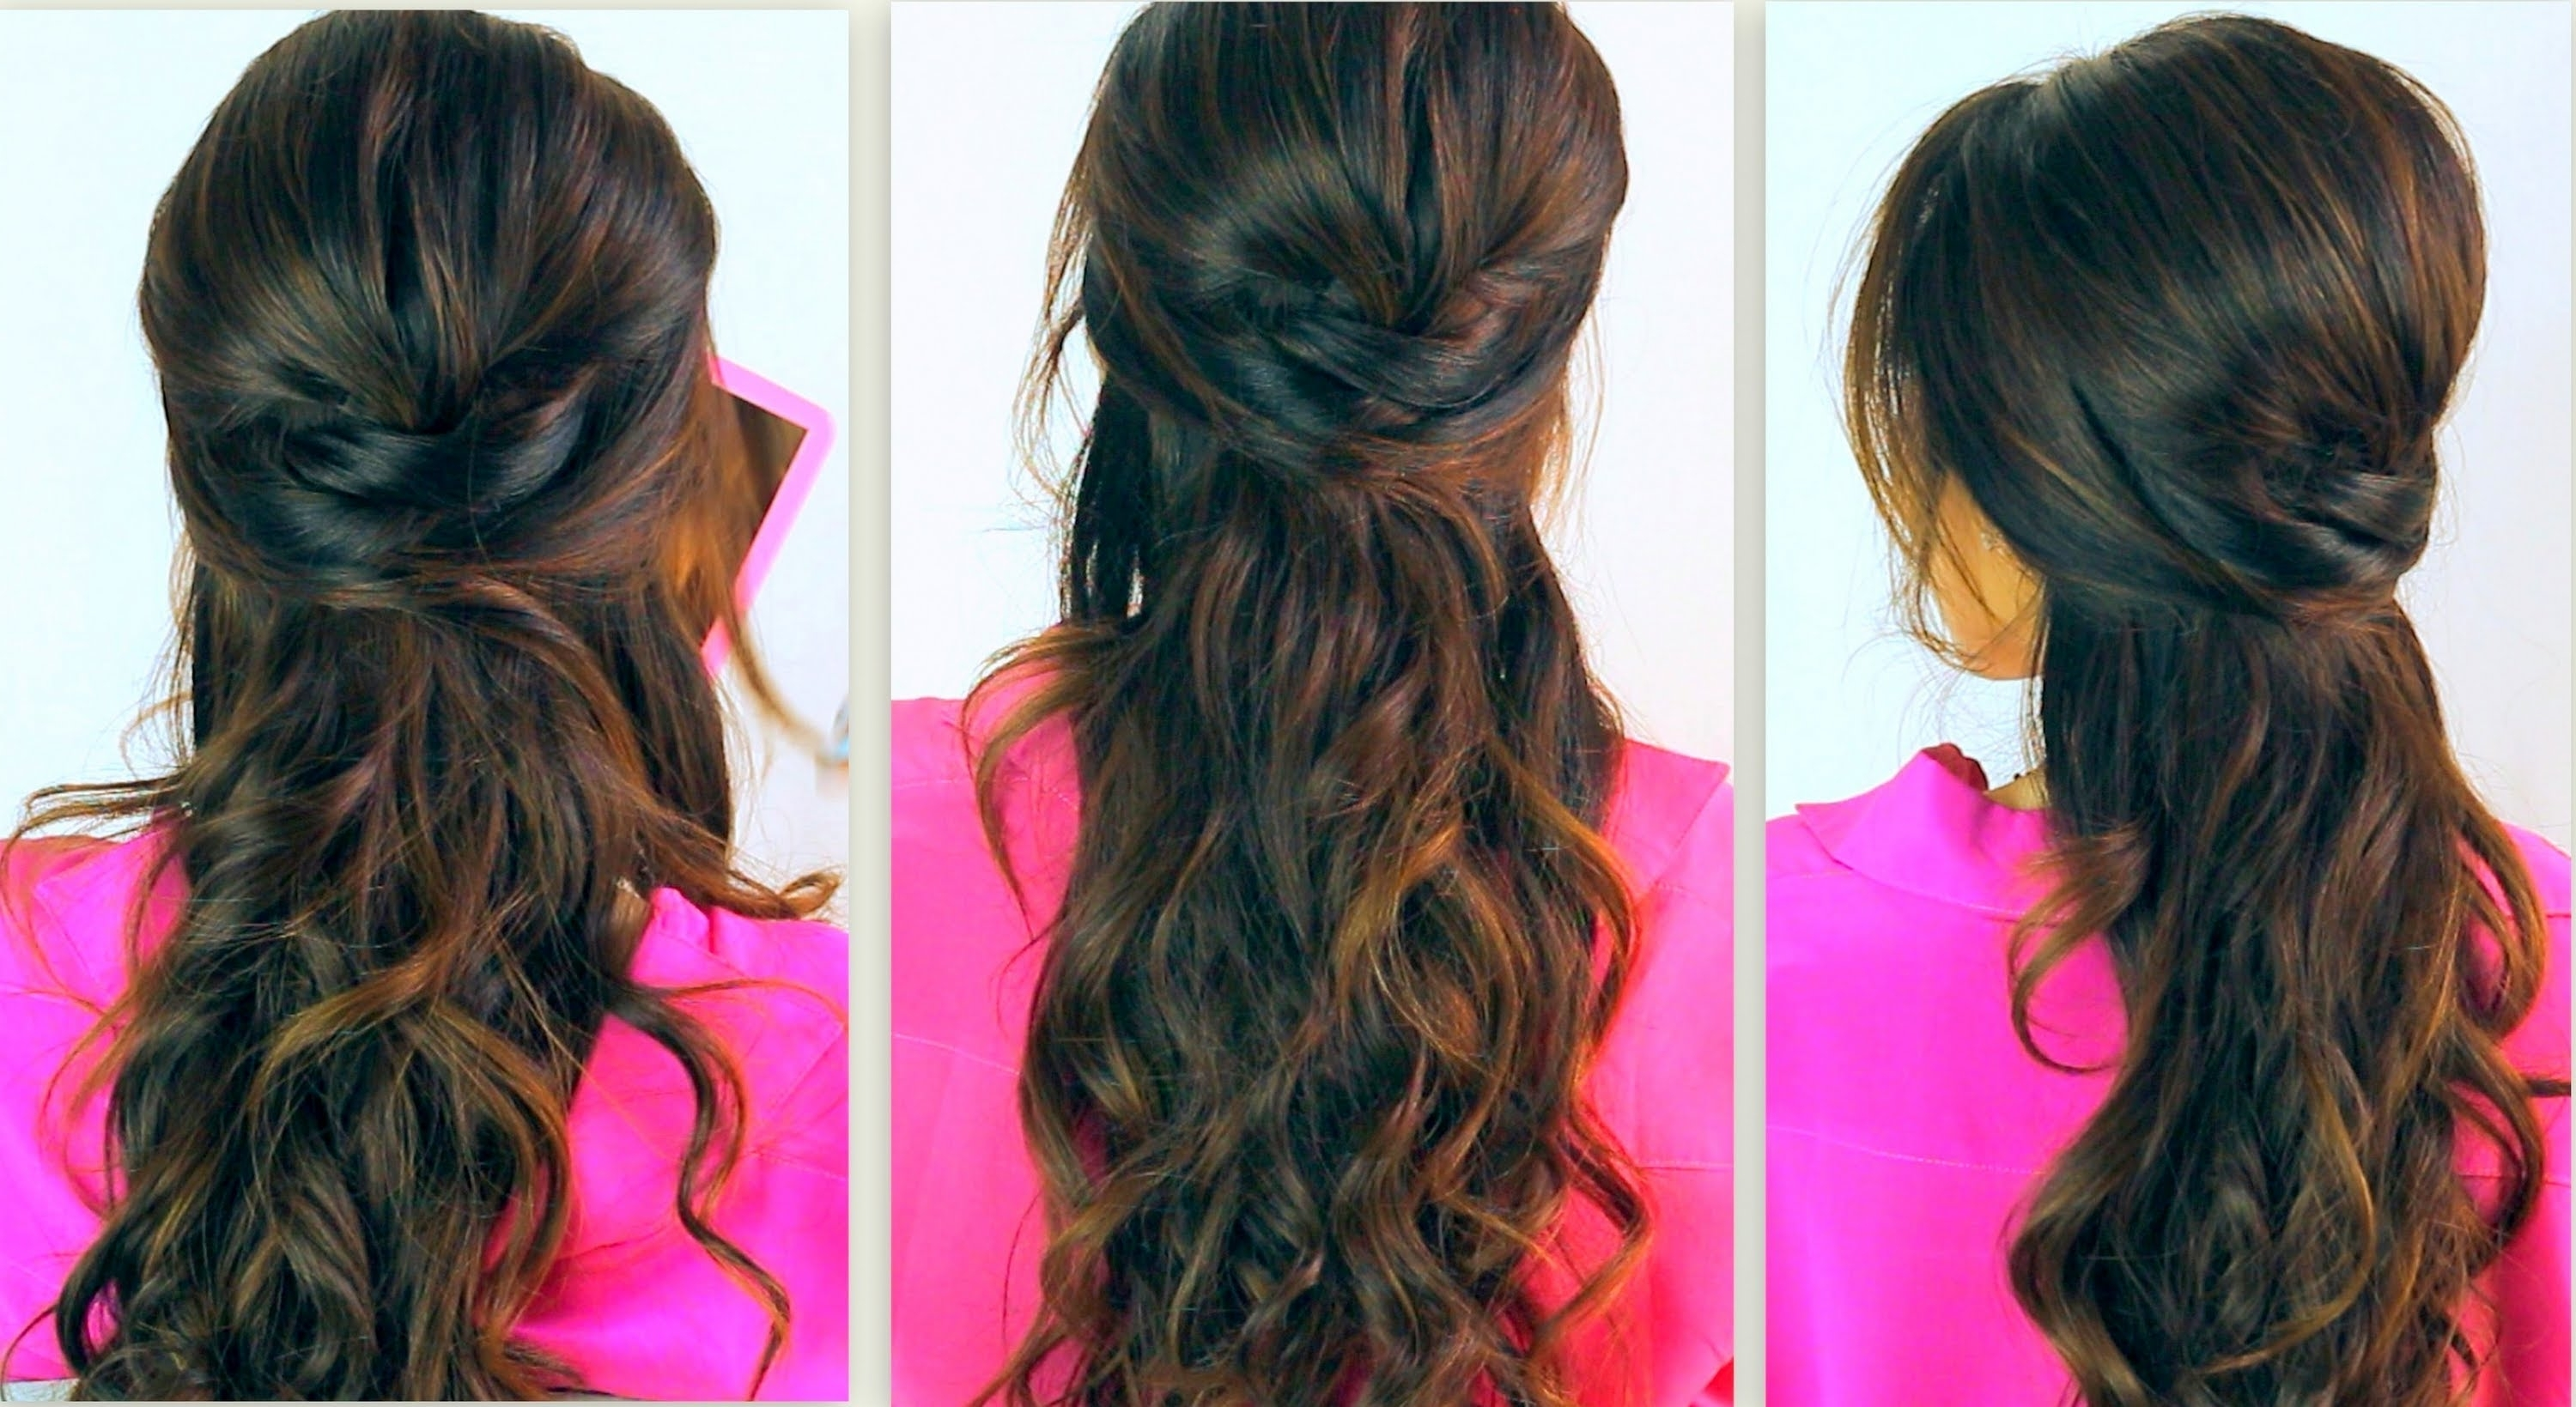 Half Up Half Down Wedding Hairstyles For Thin Hair – Top Hairstyle Ideas With Regard To Widely Used Wedding Hairstyles Down For Thin Hair (View 7 of 15)